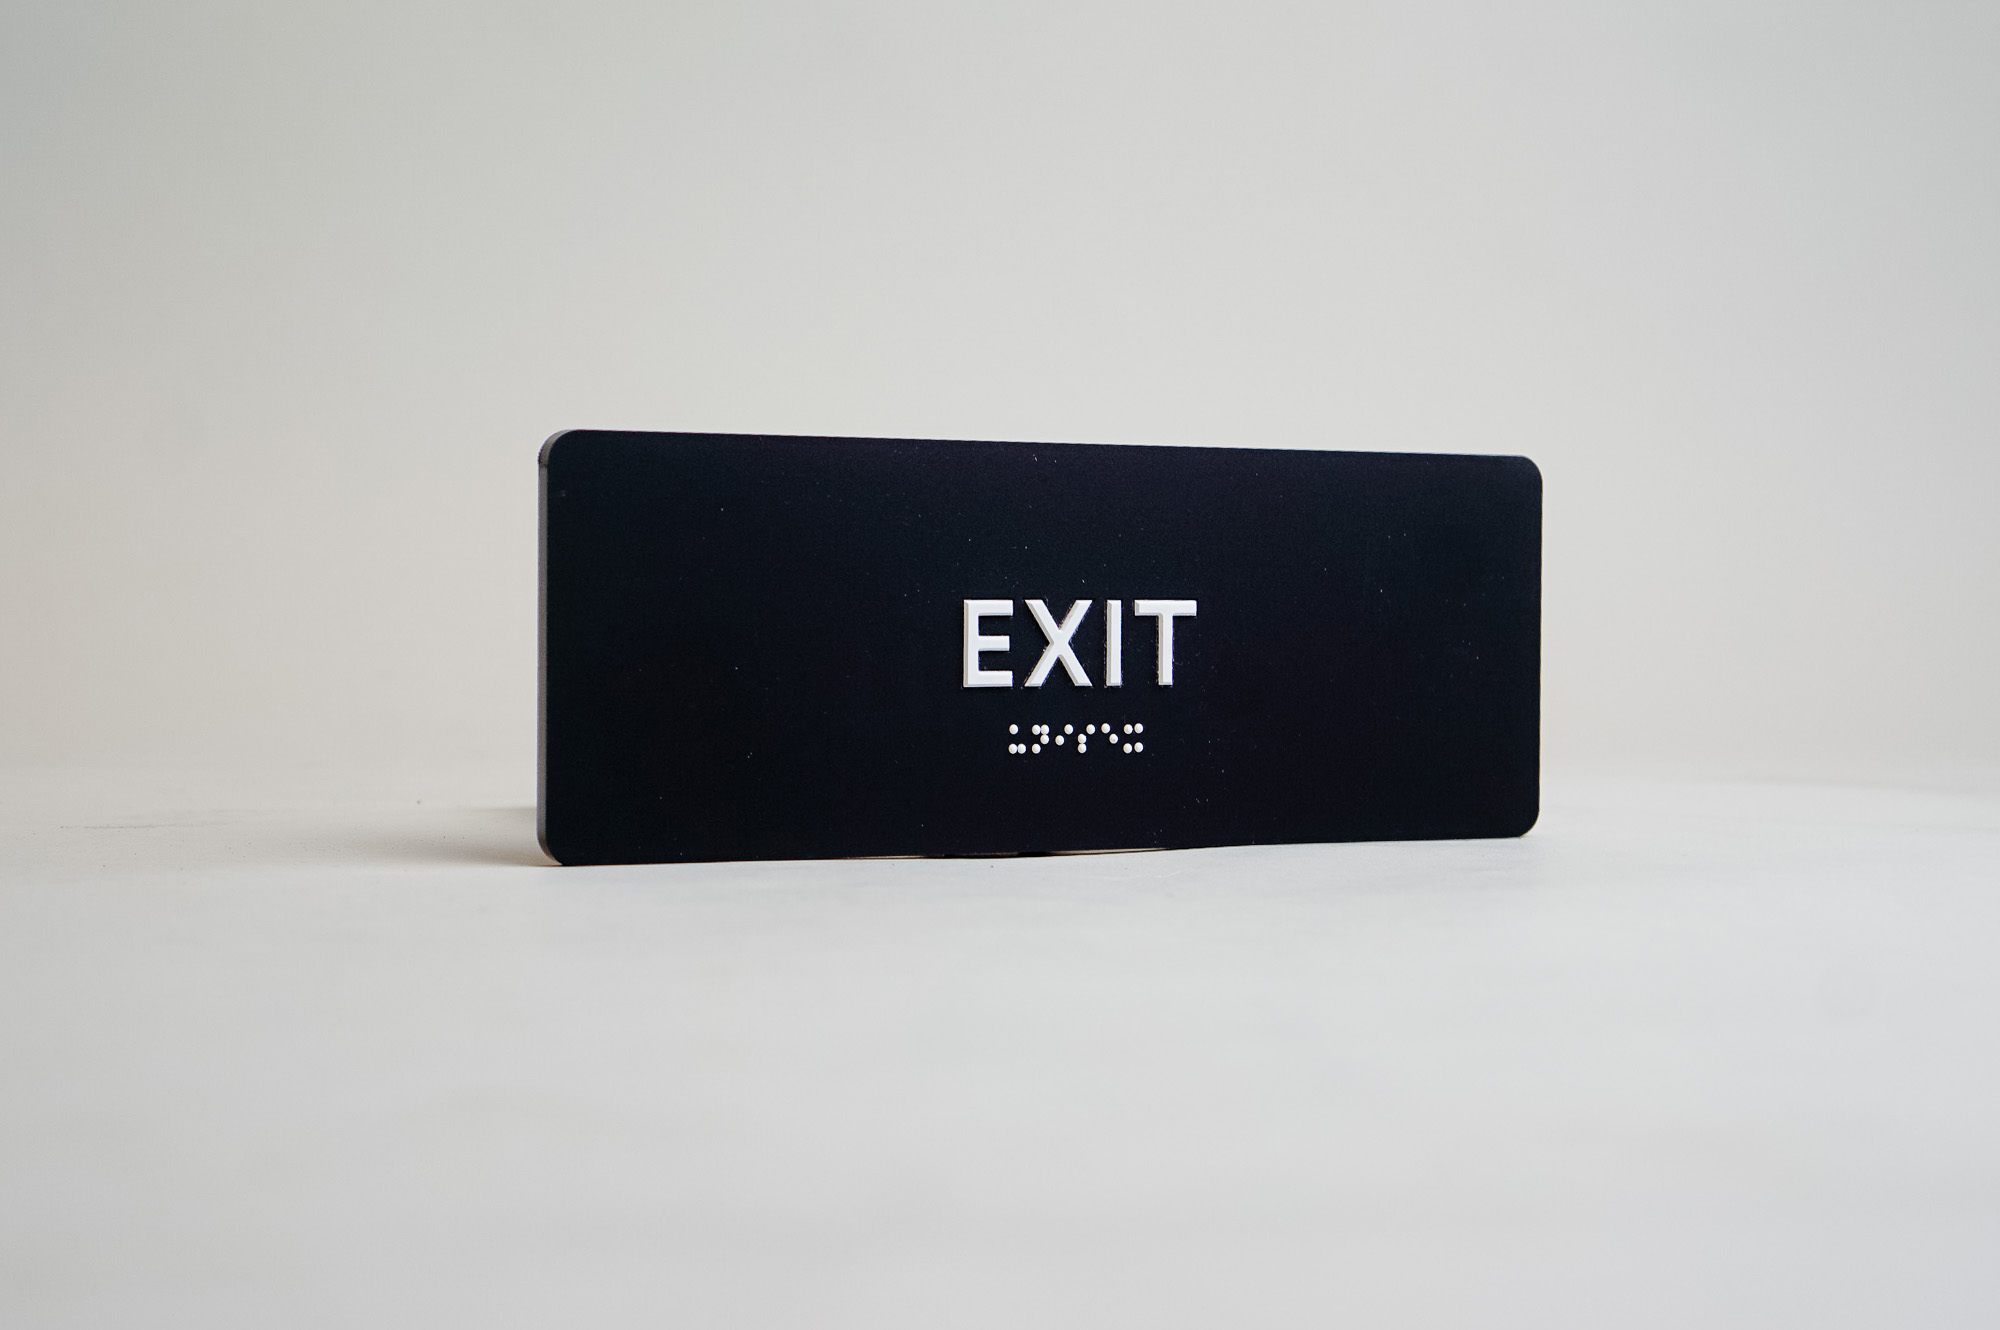 Modern black and white ADA exit sign